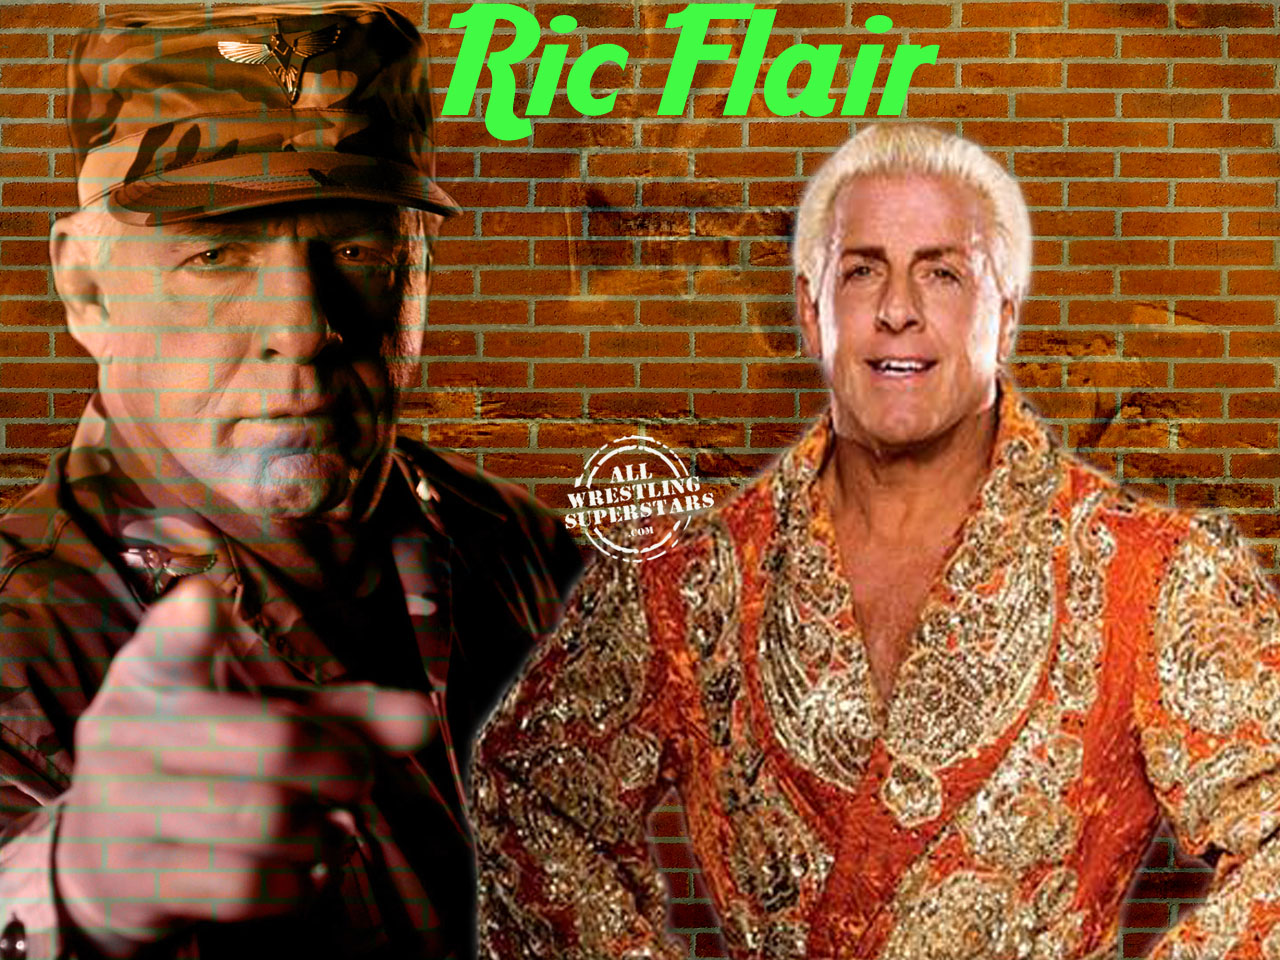 1280x960 - Ric Flair Wallpapers 20